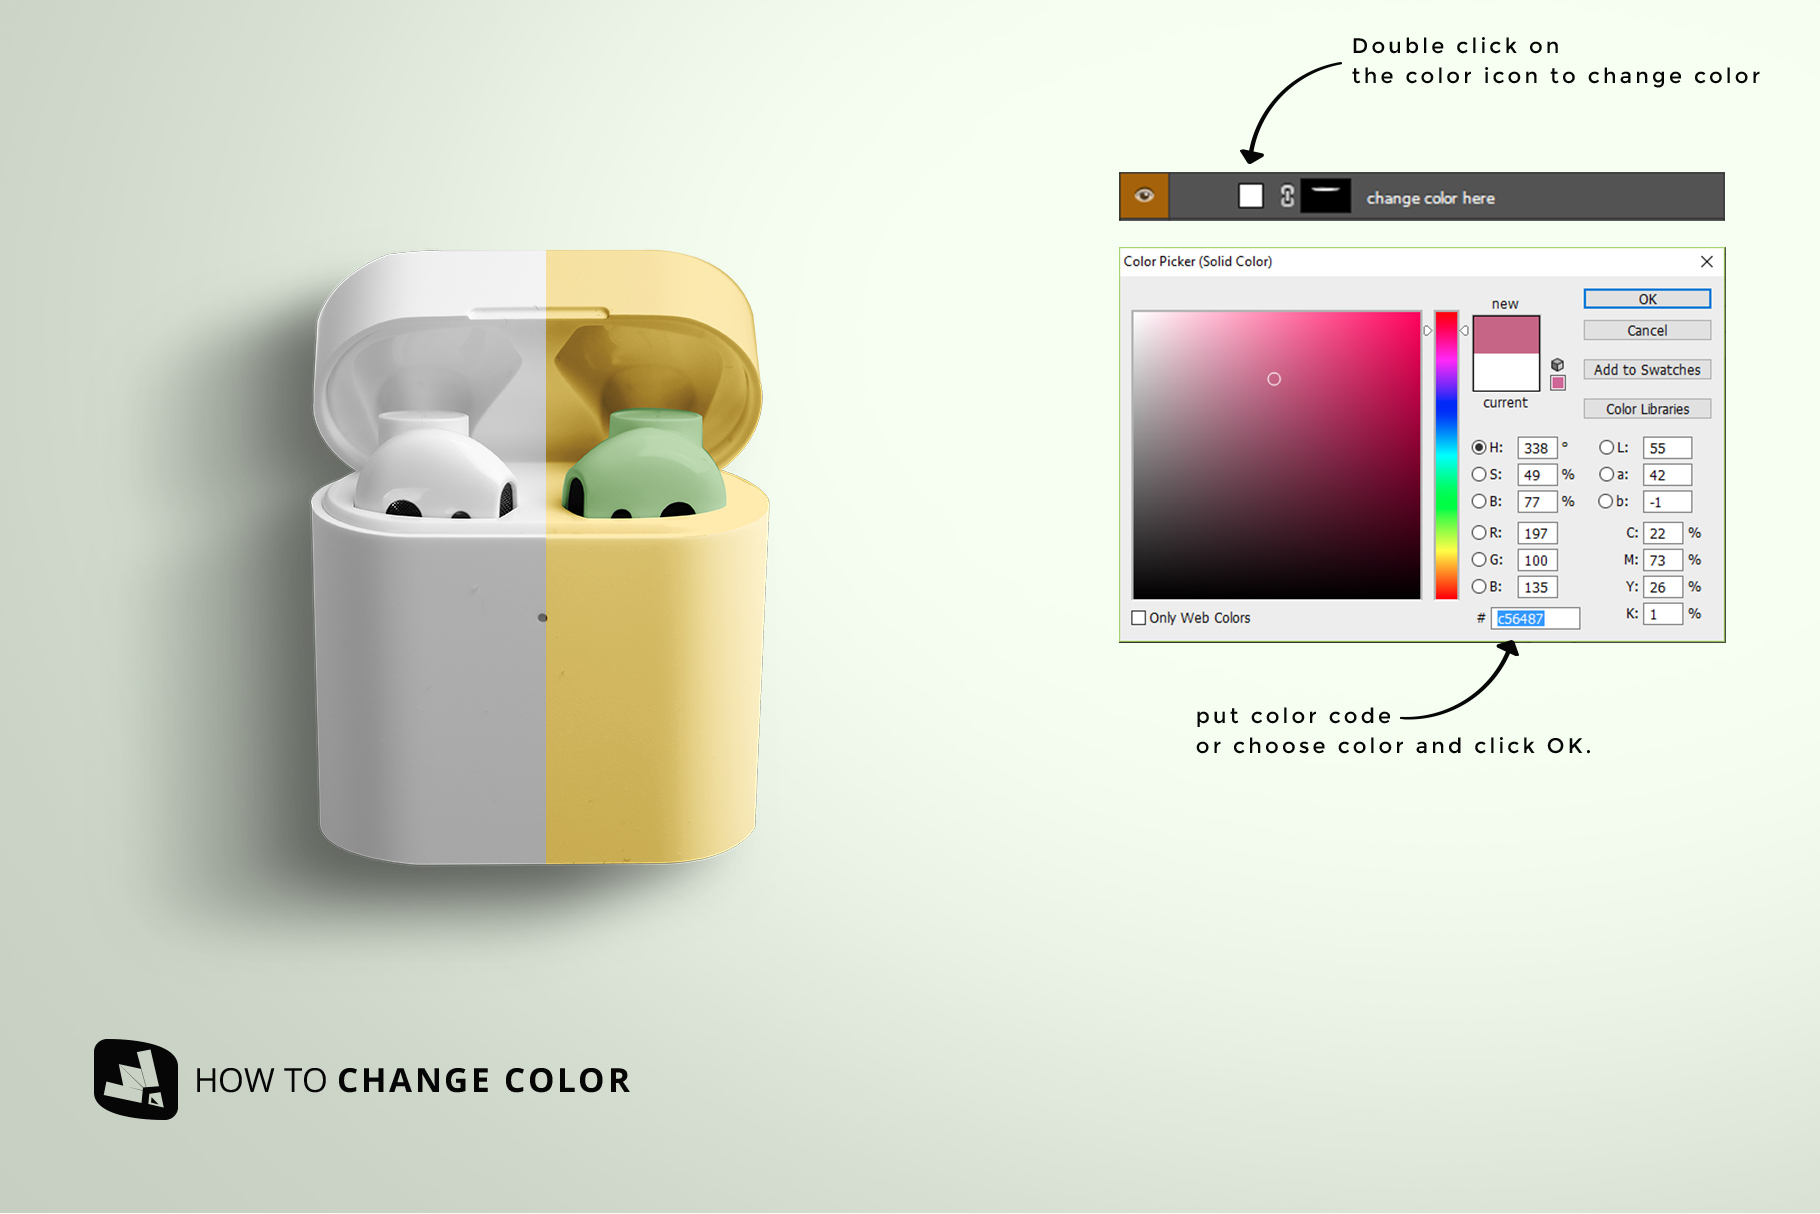 how to change color of the wireless earphone case mockup